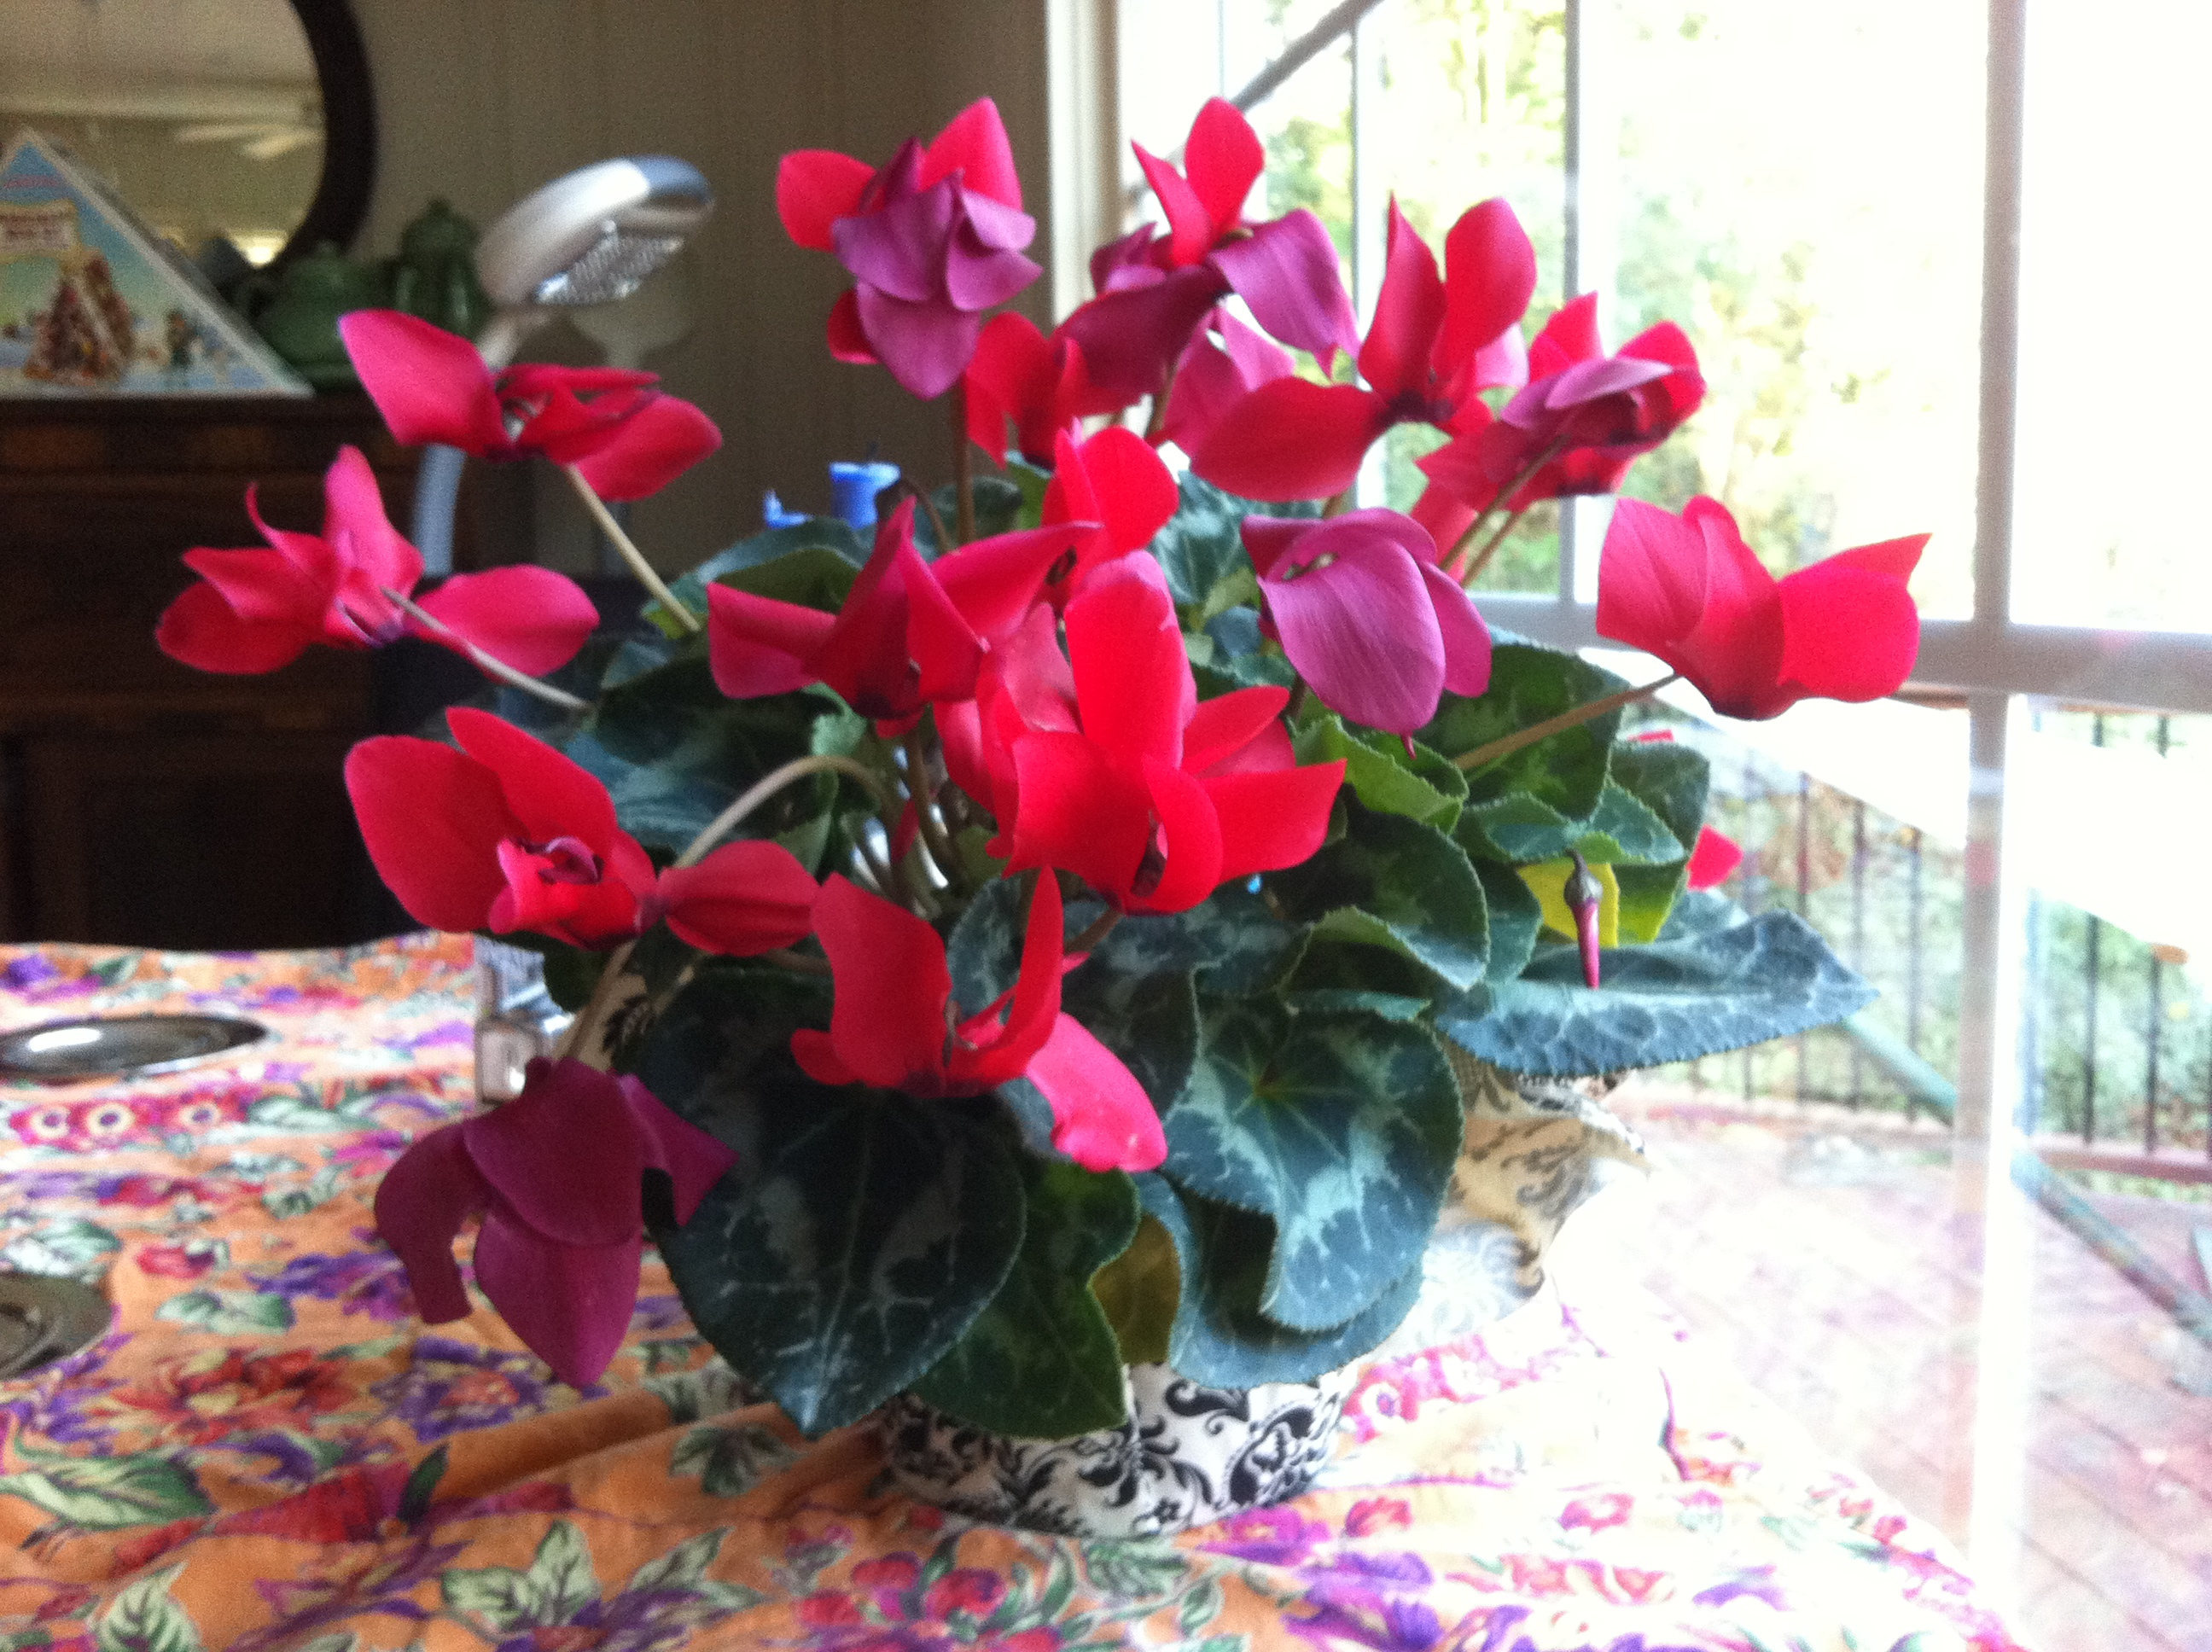 Cyclamen On My Breakfast Table